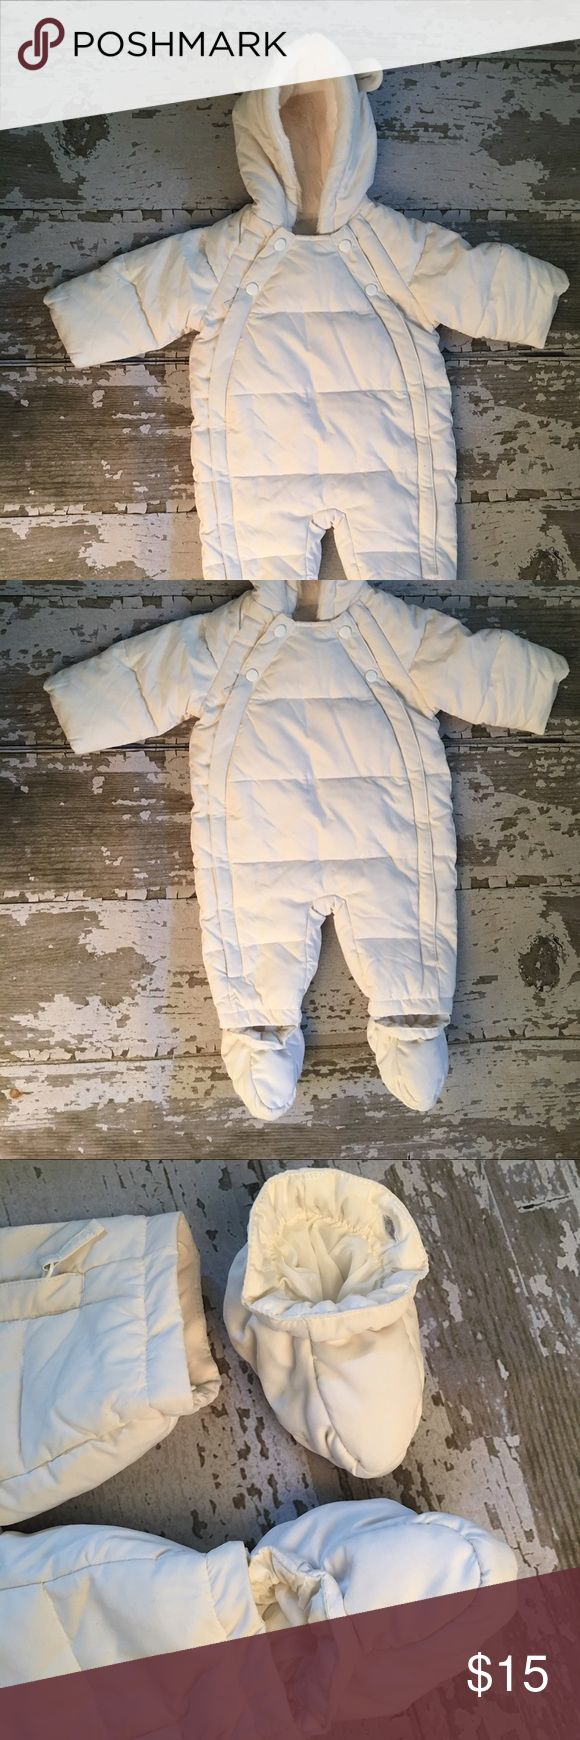 Marks & Spencer Baby Snowsuit Marks & Spencer Snowsuits  Size: please see picture for size  Color: cream/ivory  In gently used condition. Comes with detachable booties. Button and zipper Front Opening. Very Soft. marks & spencer Jackets & Coats